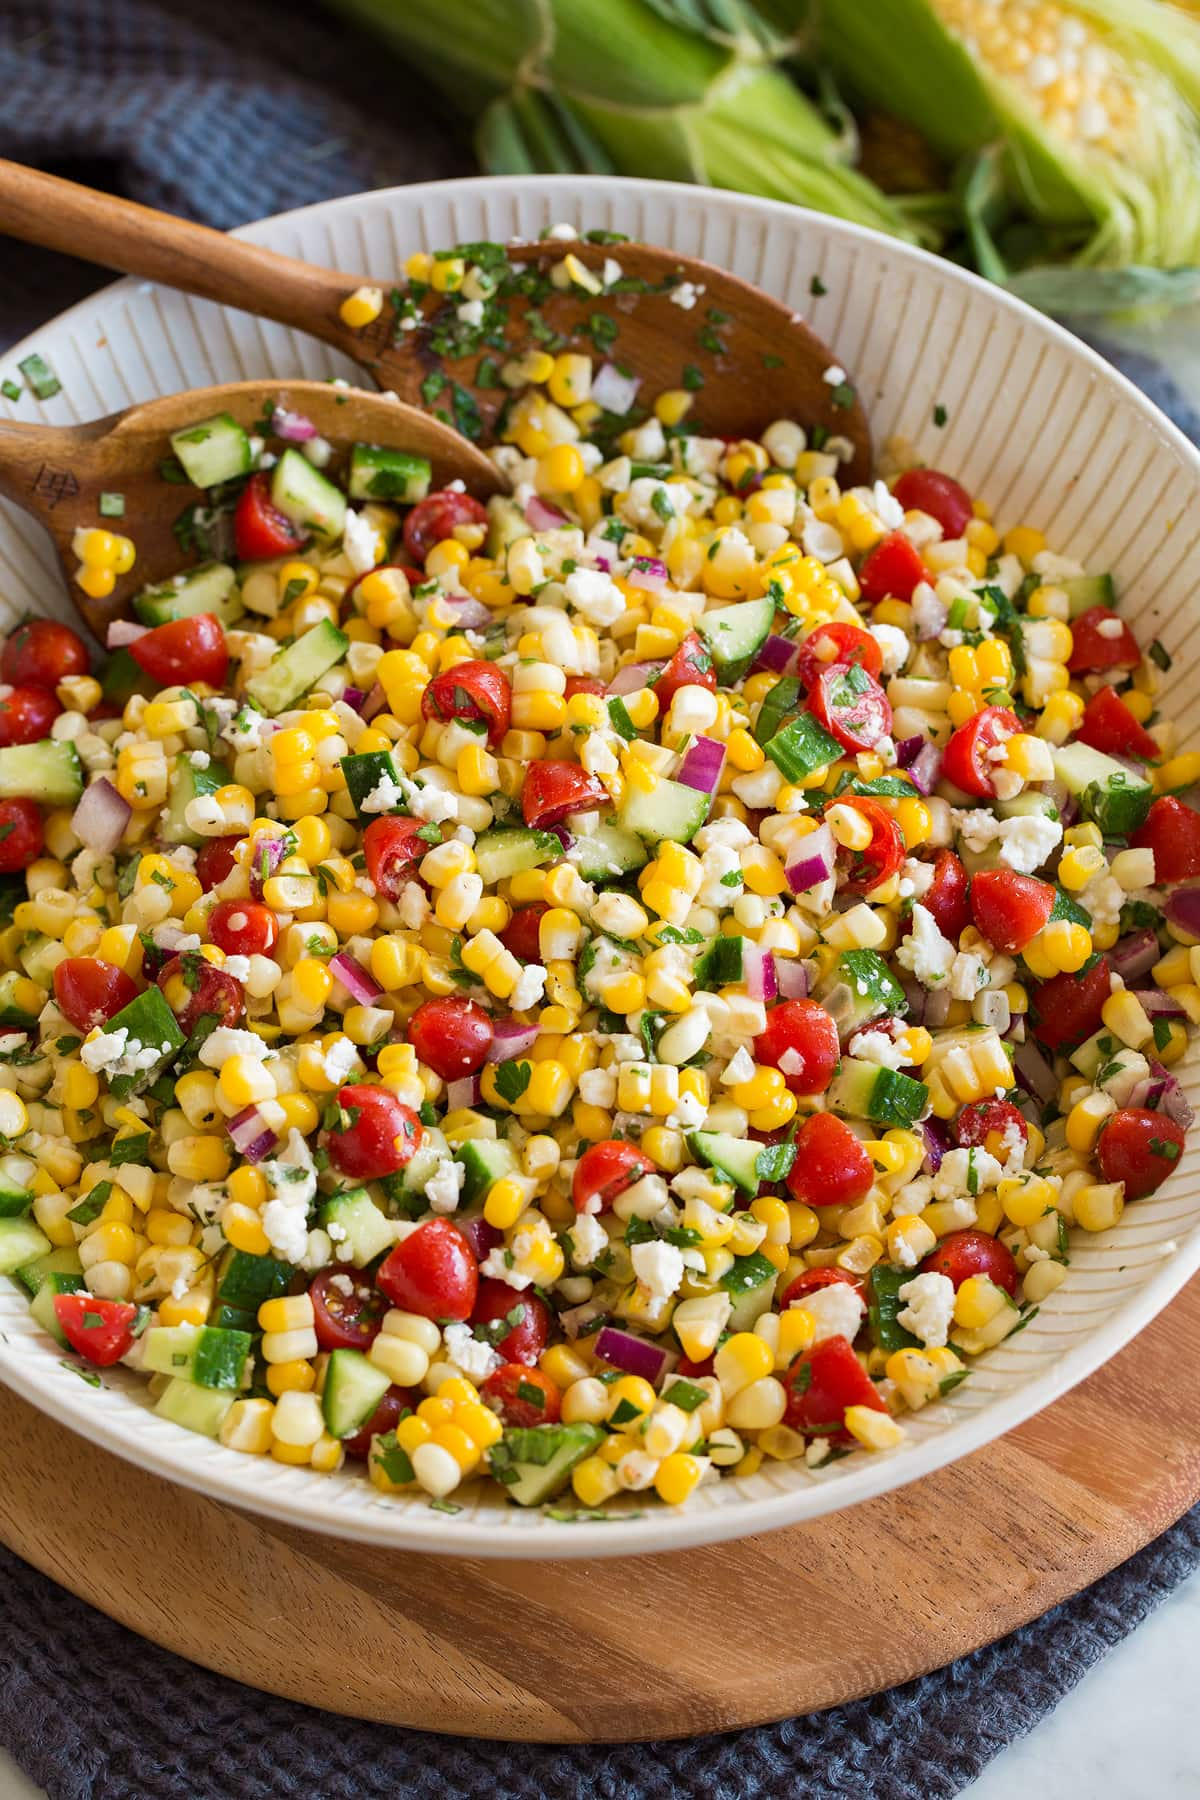 Photo: Corn salad shown in a white serving bowl over a wooden platter and blue cloth. Salad includes fresh corn, tomatoes, red onion, cucumber, feta, herbs and dressing.